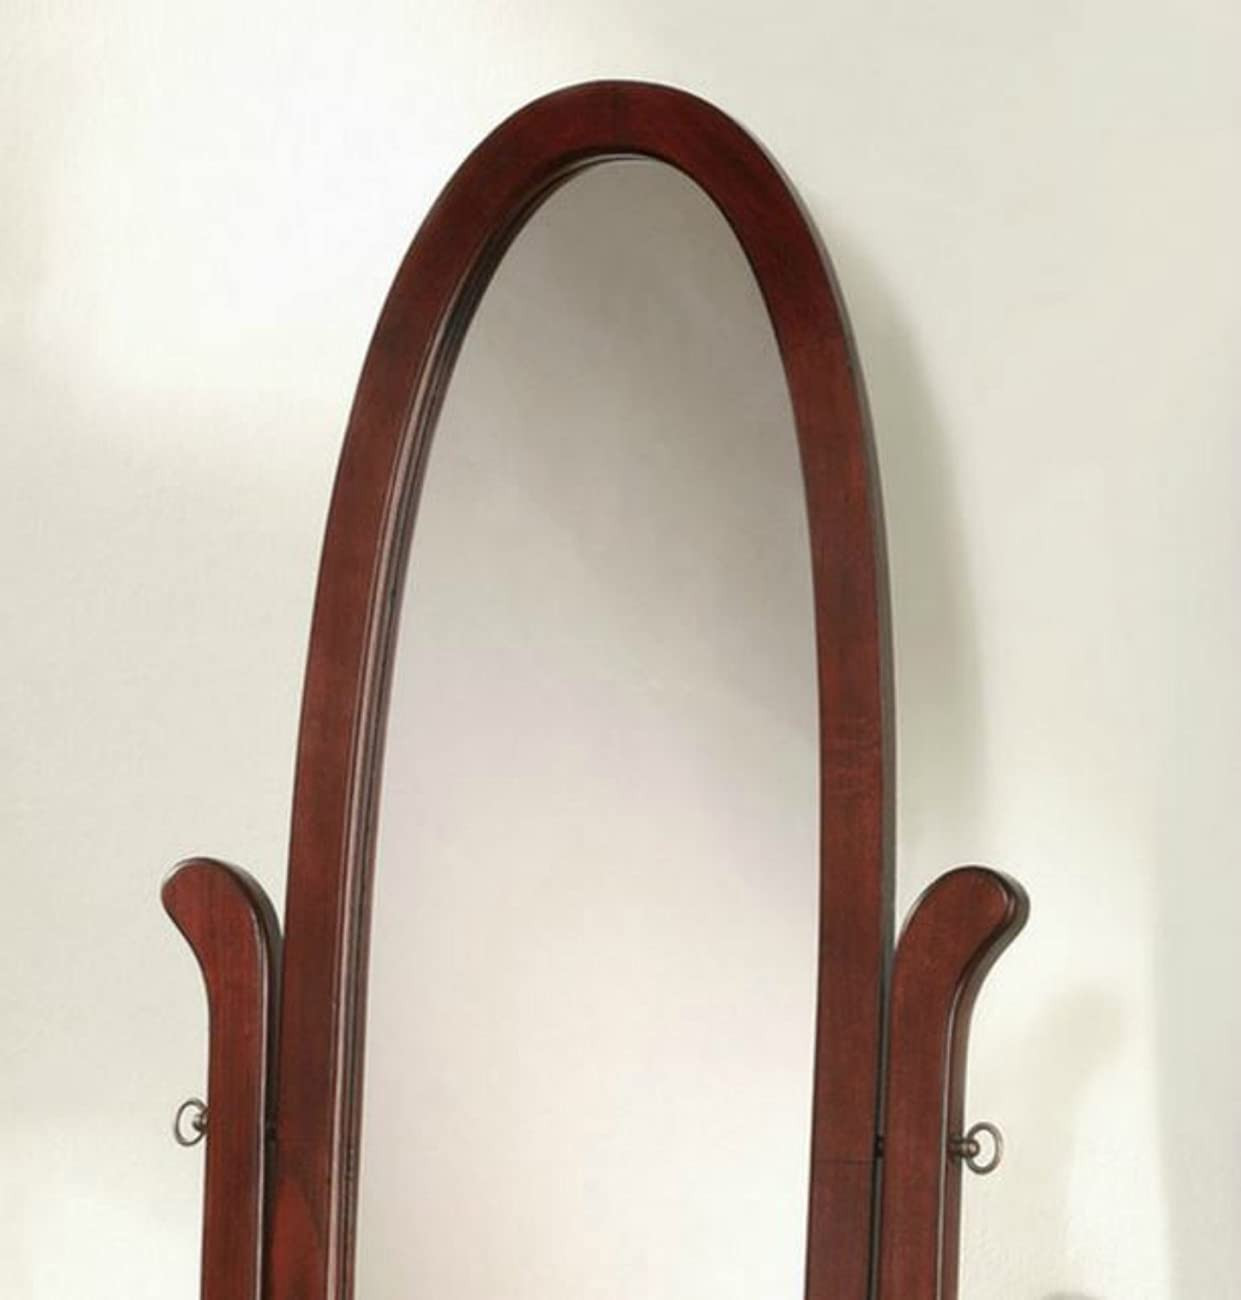 Wildon Home Cherry Full Length Standing Seatac Cheval Floor Mirror - This Oval Floor Mirror Is in Beautiful Contemporary Style and Is the Perfect Addition to Your Bedroom, Living Room, Family Room, Office or Any Other Room in You Home 3